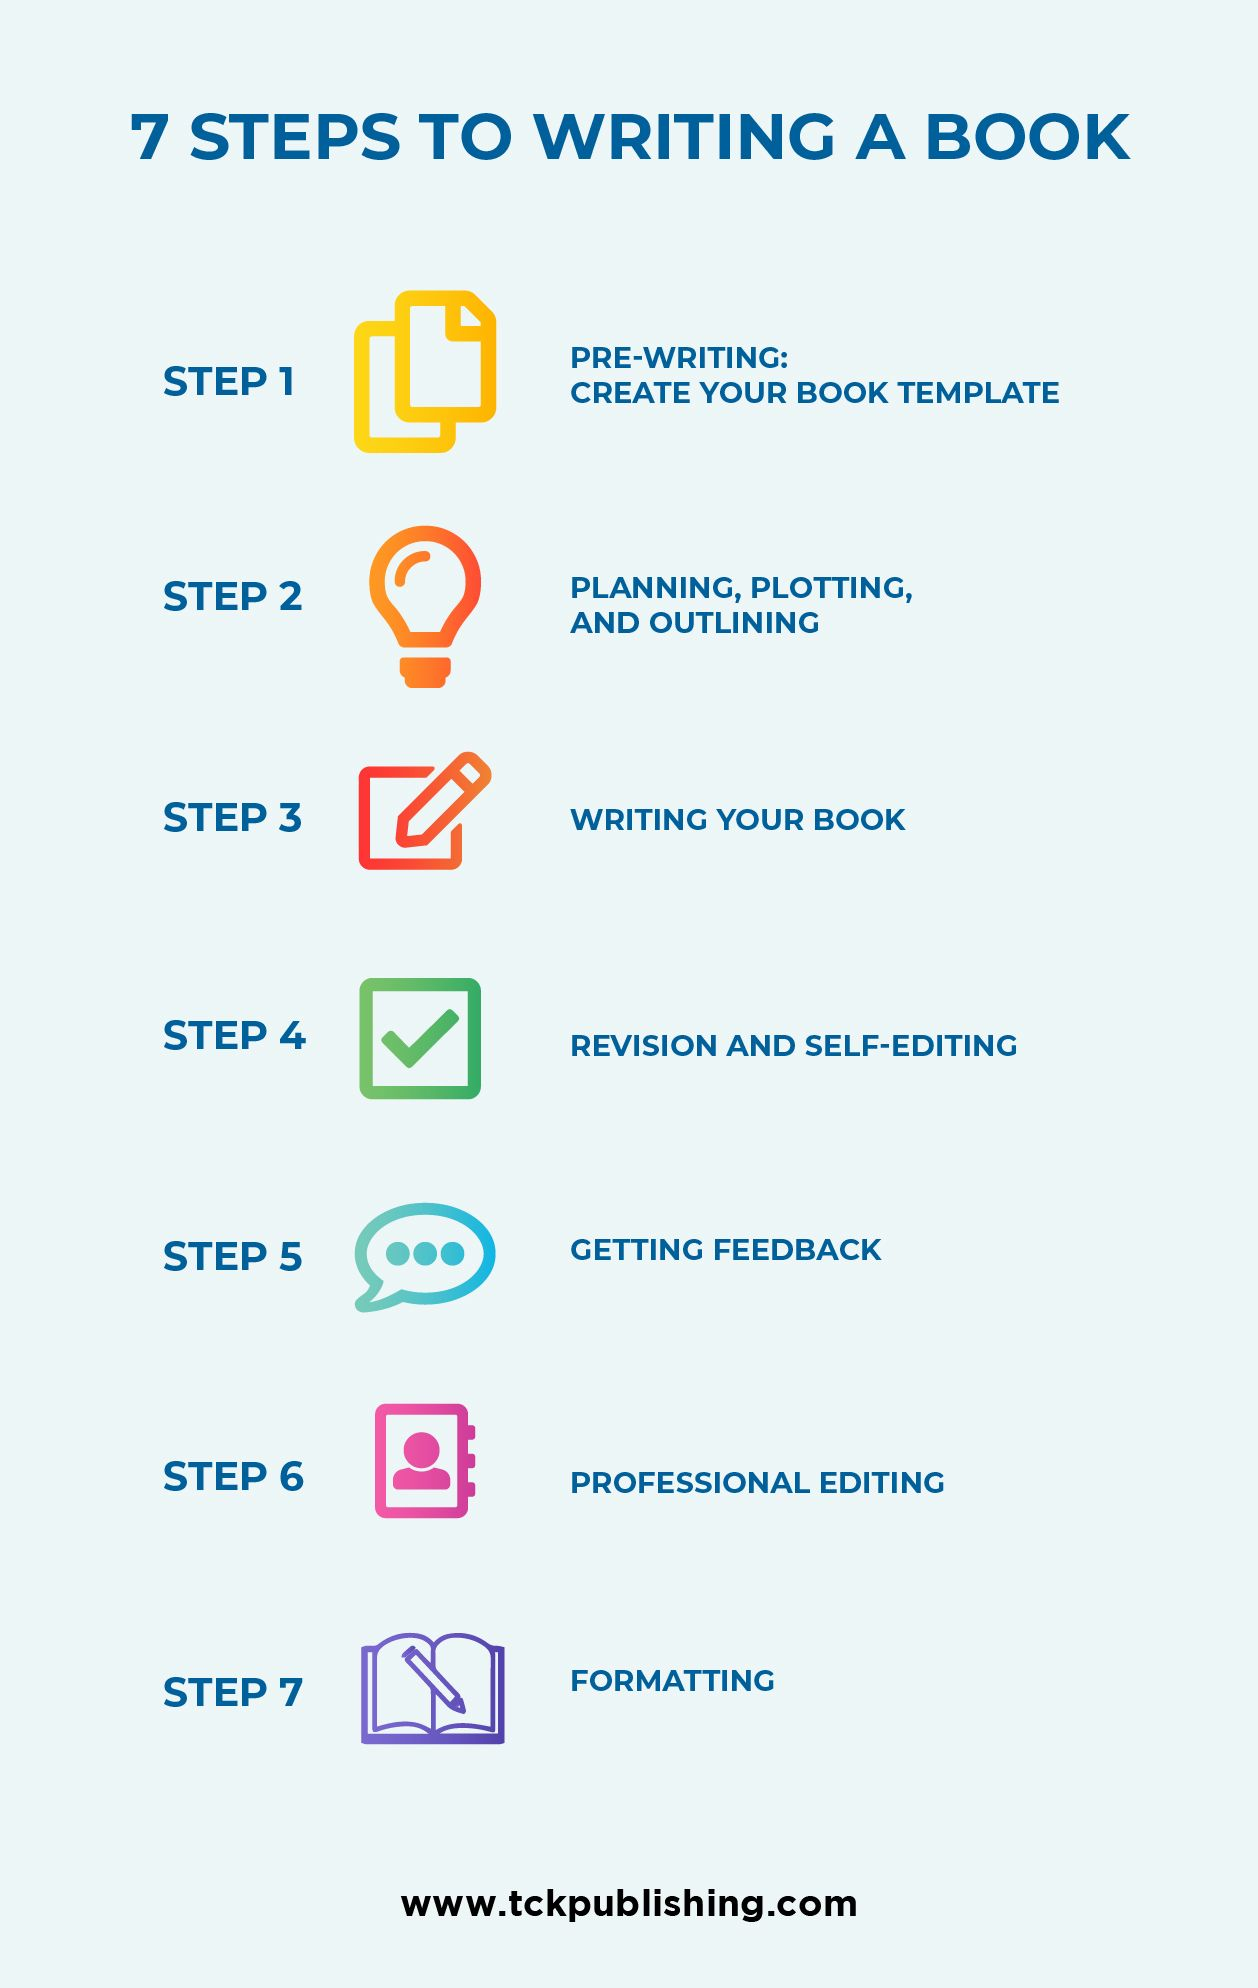 How to write a book 7 simple steps to writing a book that